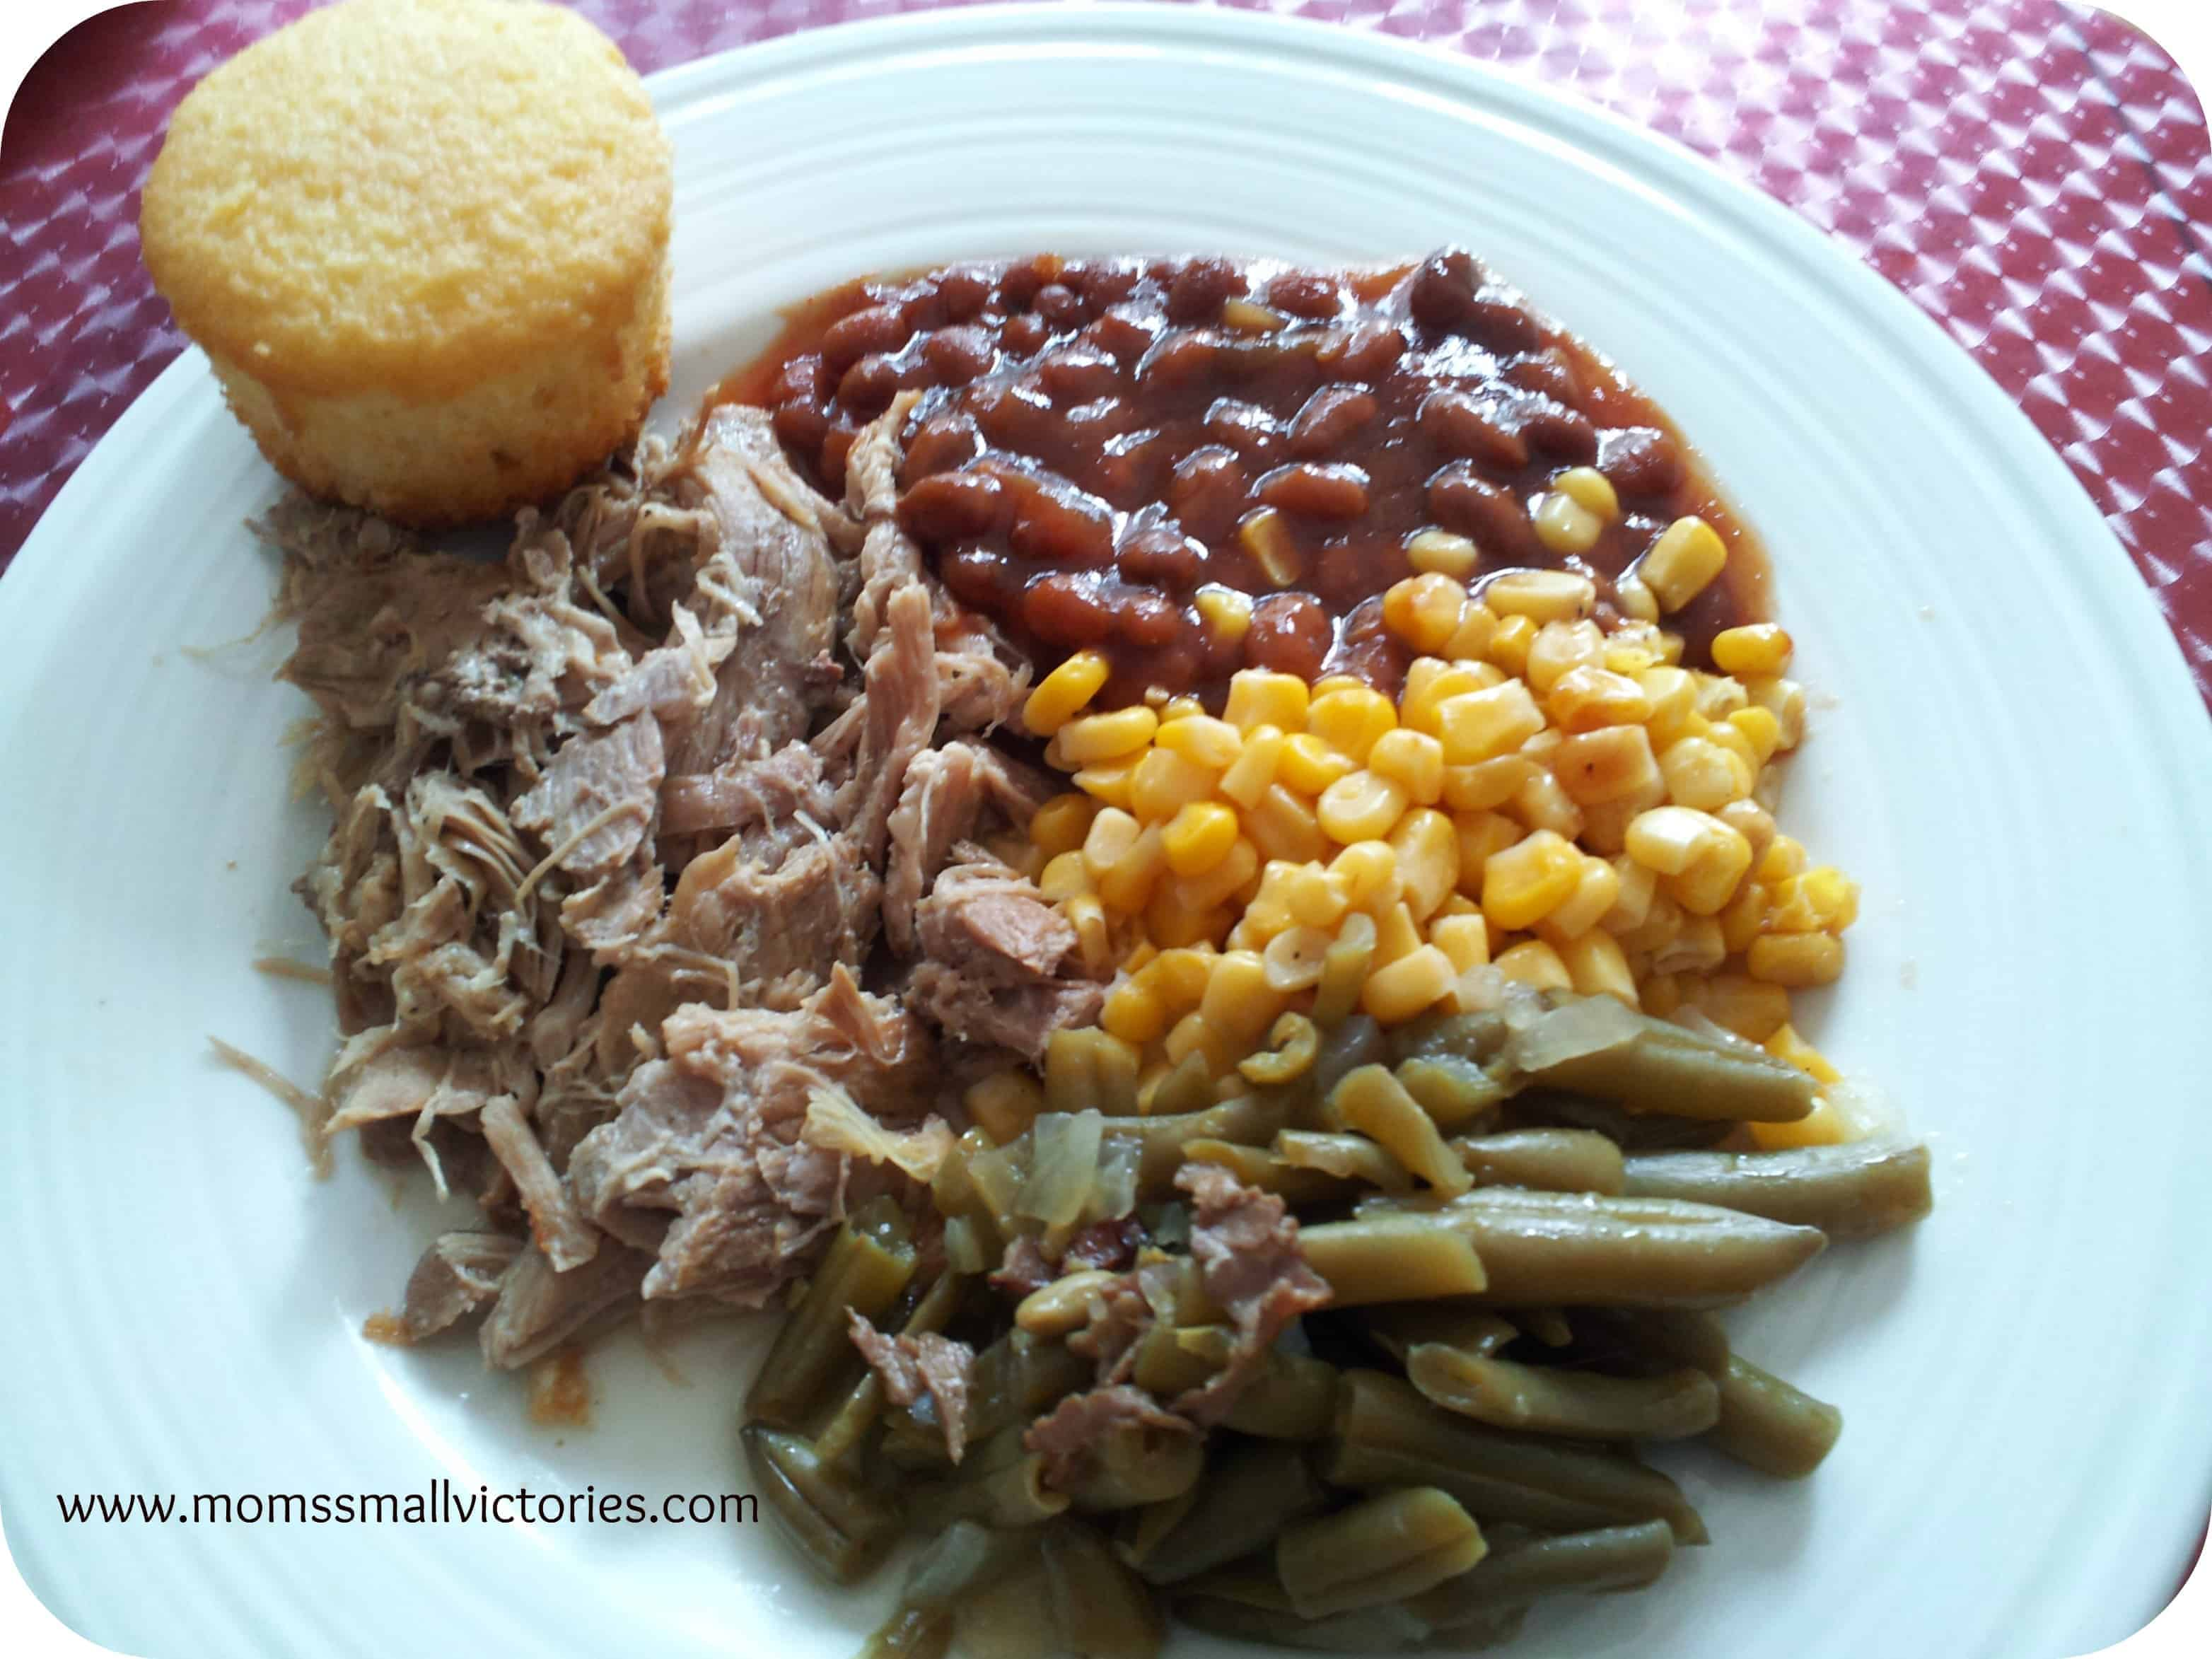 Recipe Review: Pulled Pork and NC Style Vinegar BBQ Sauce